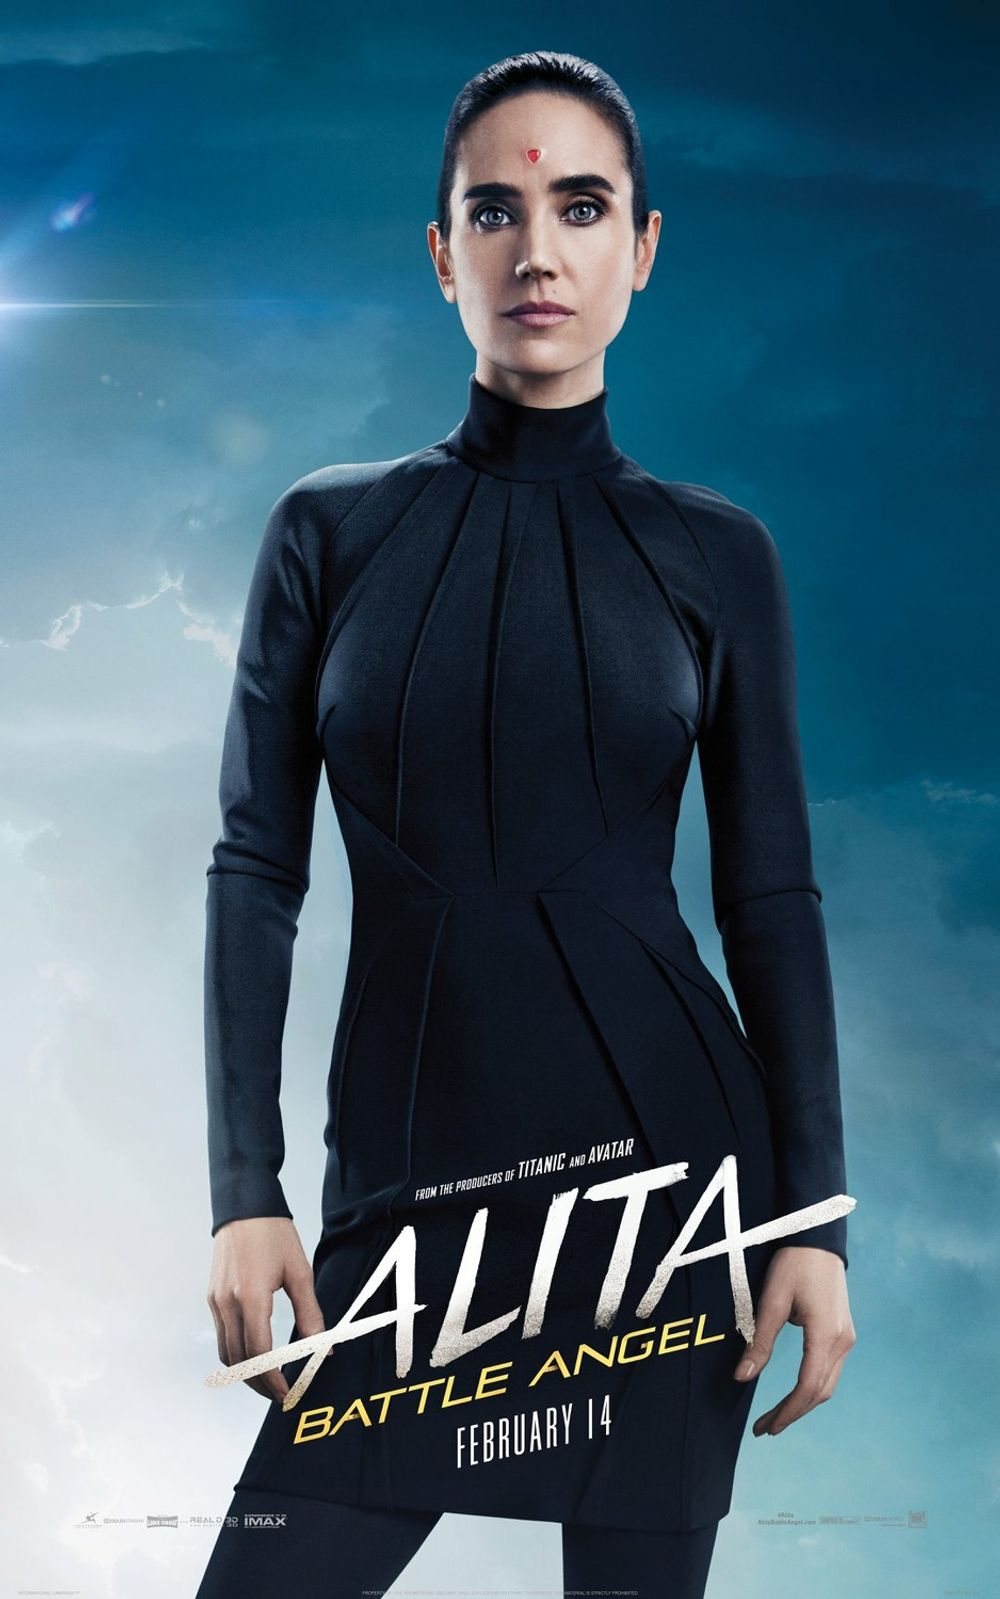 2-Alita: Battle Angel